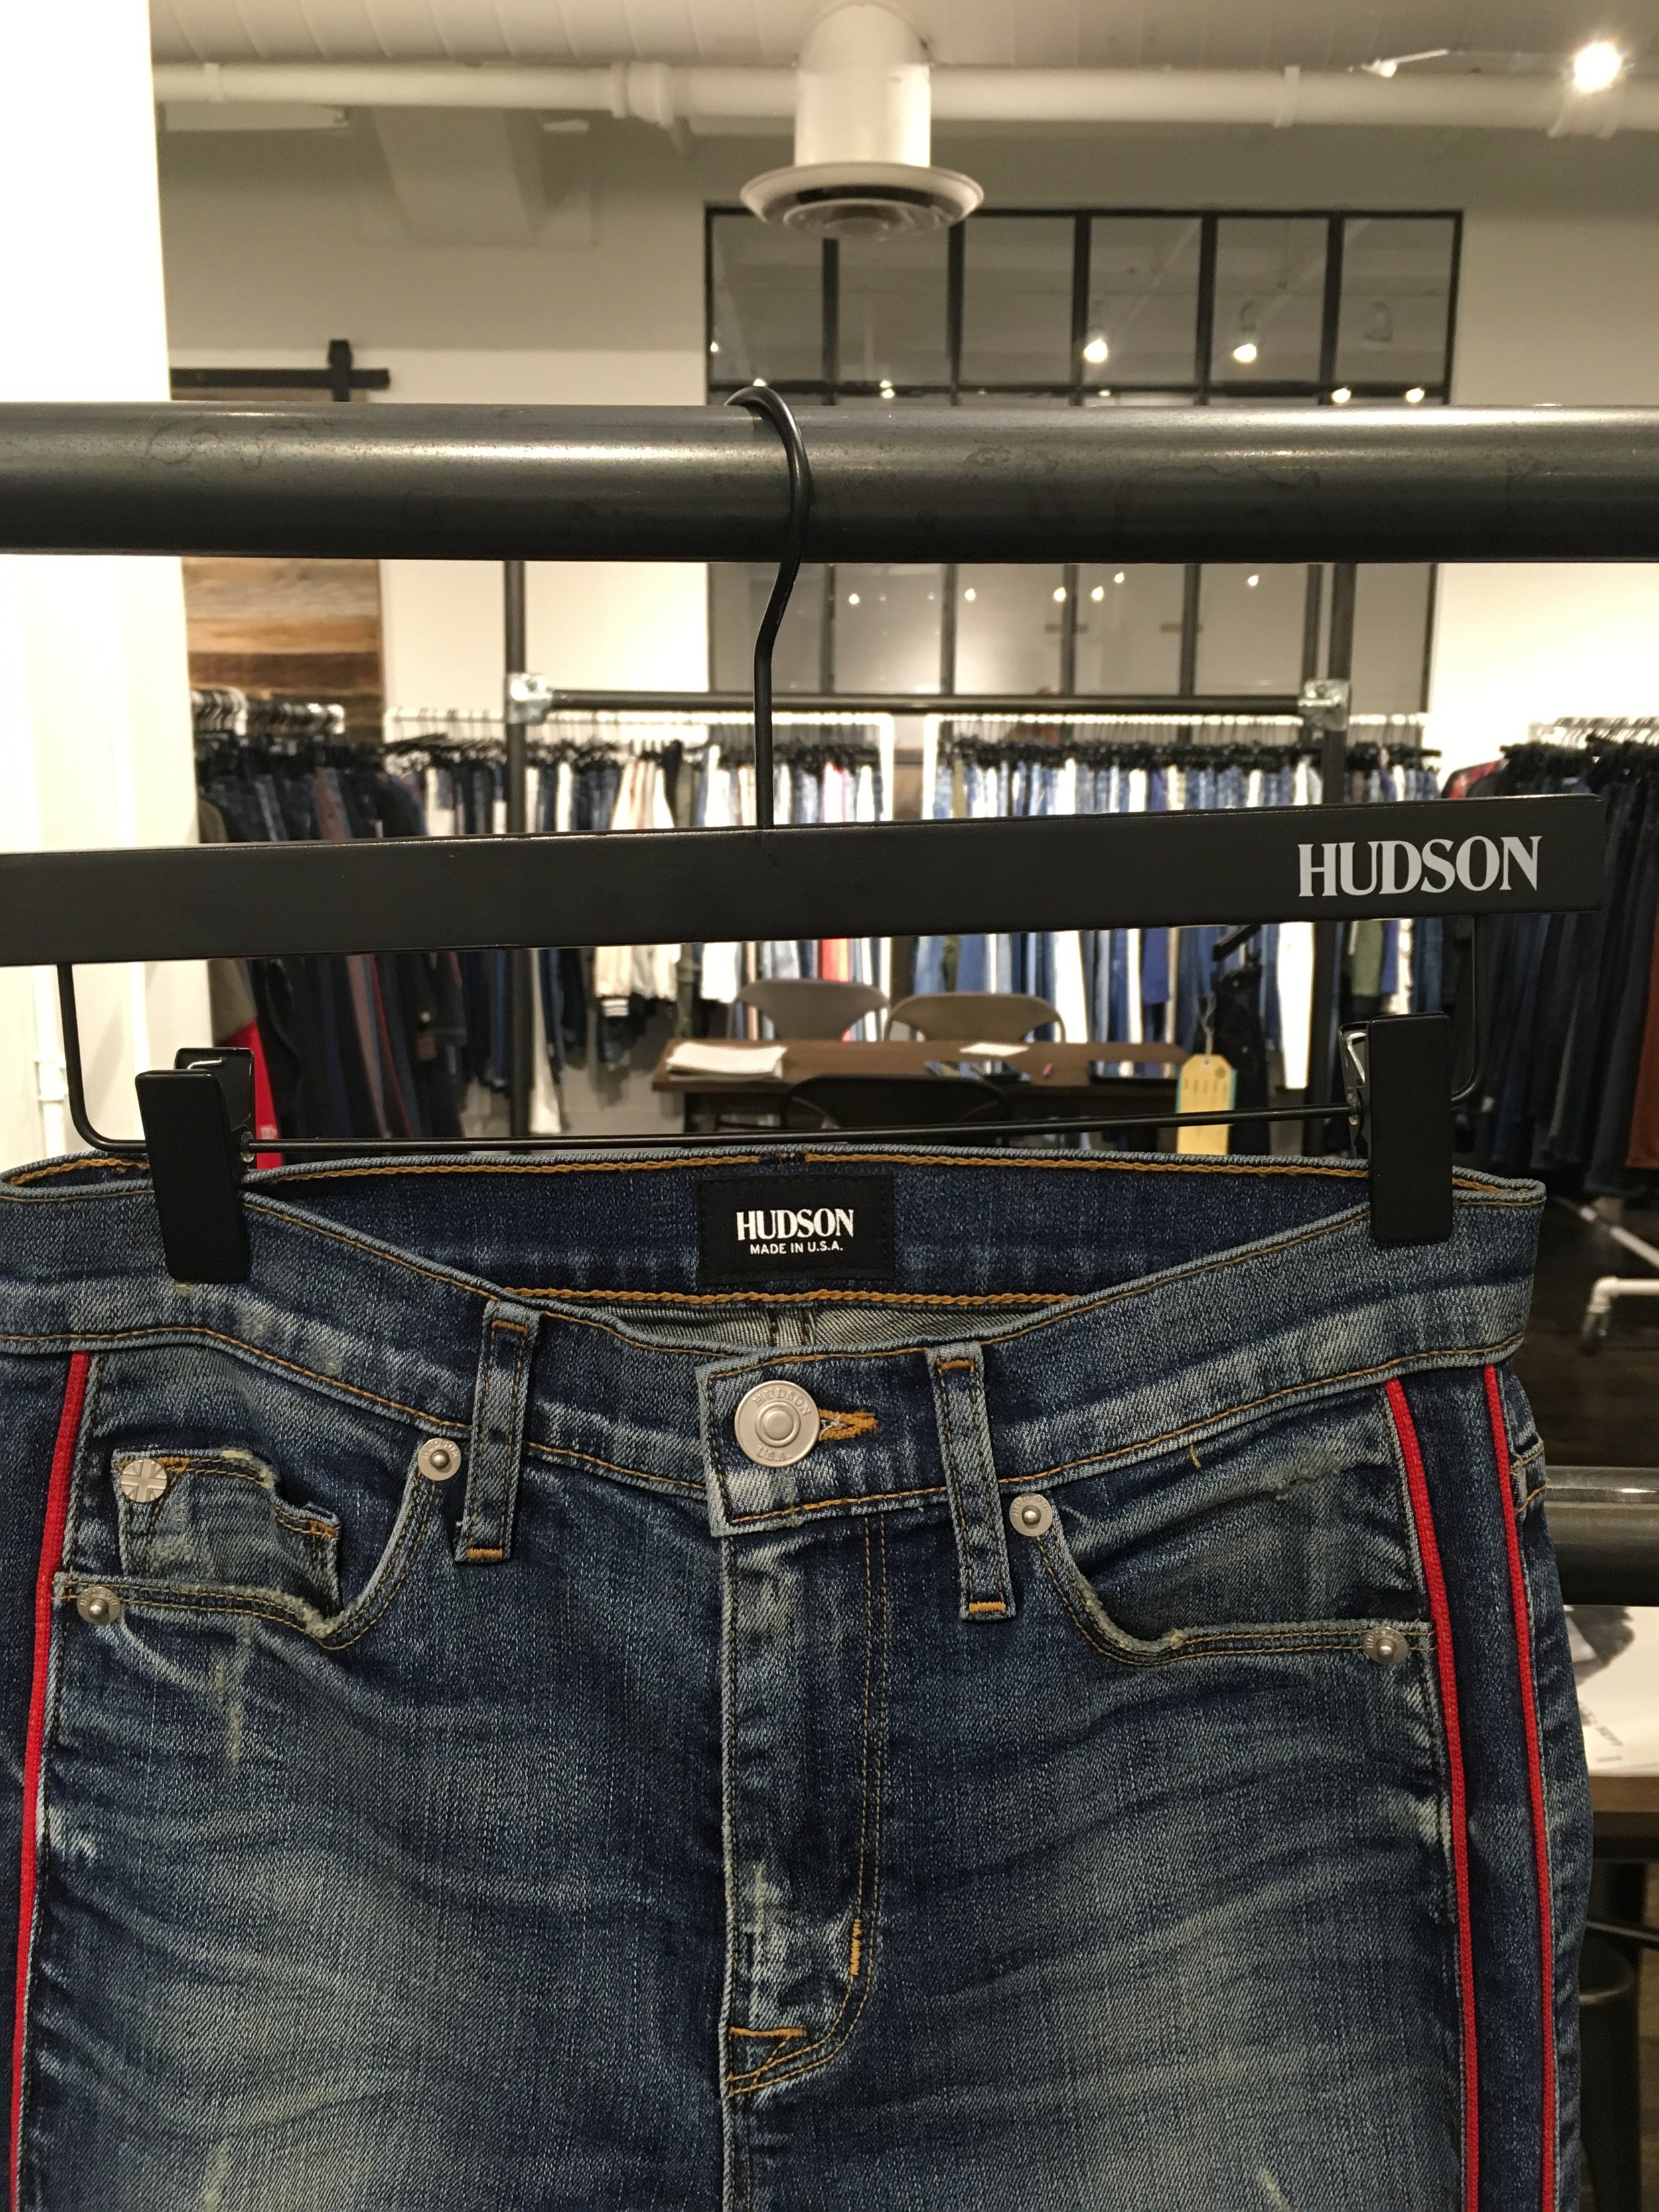 Hudson woo'd us with their unique jeans and a great party to bring awareness to their Uganda Organization and new collections